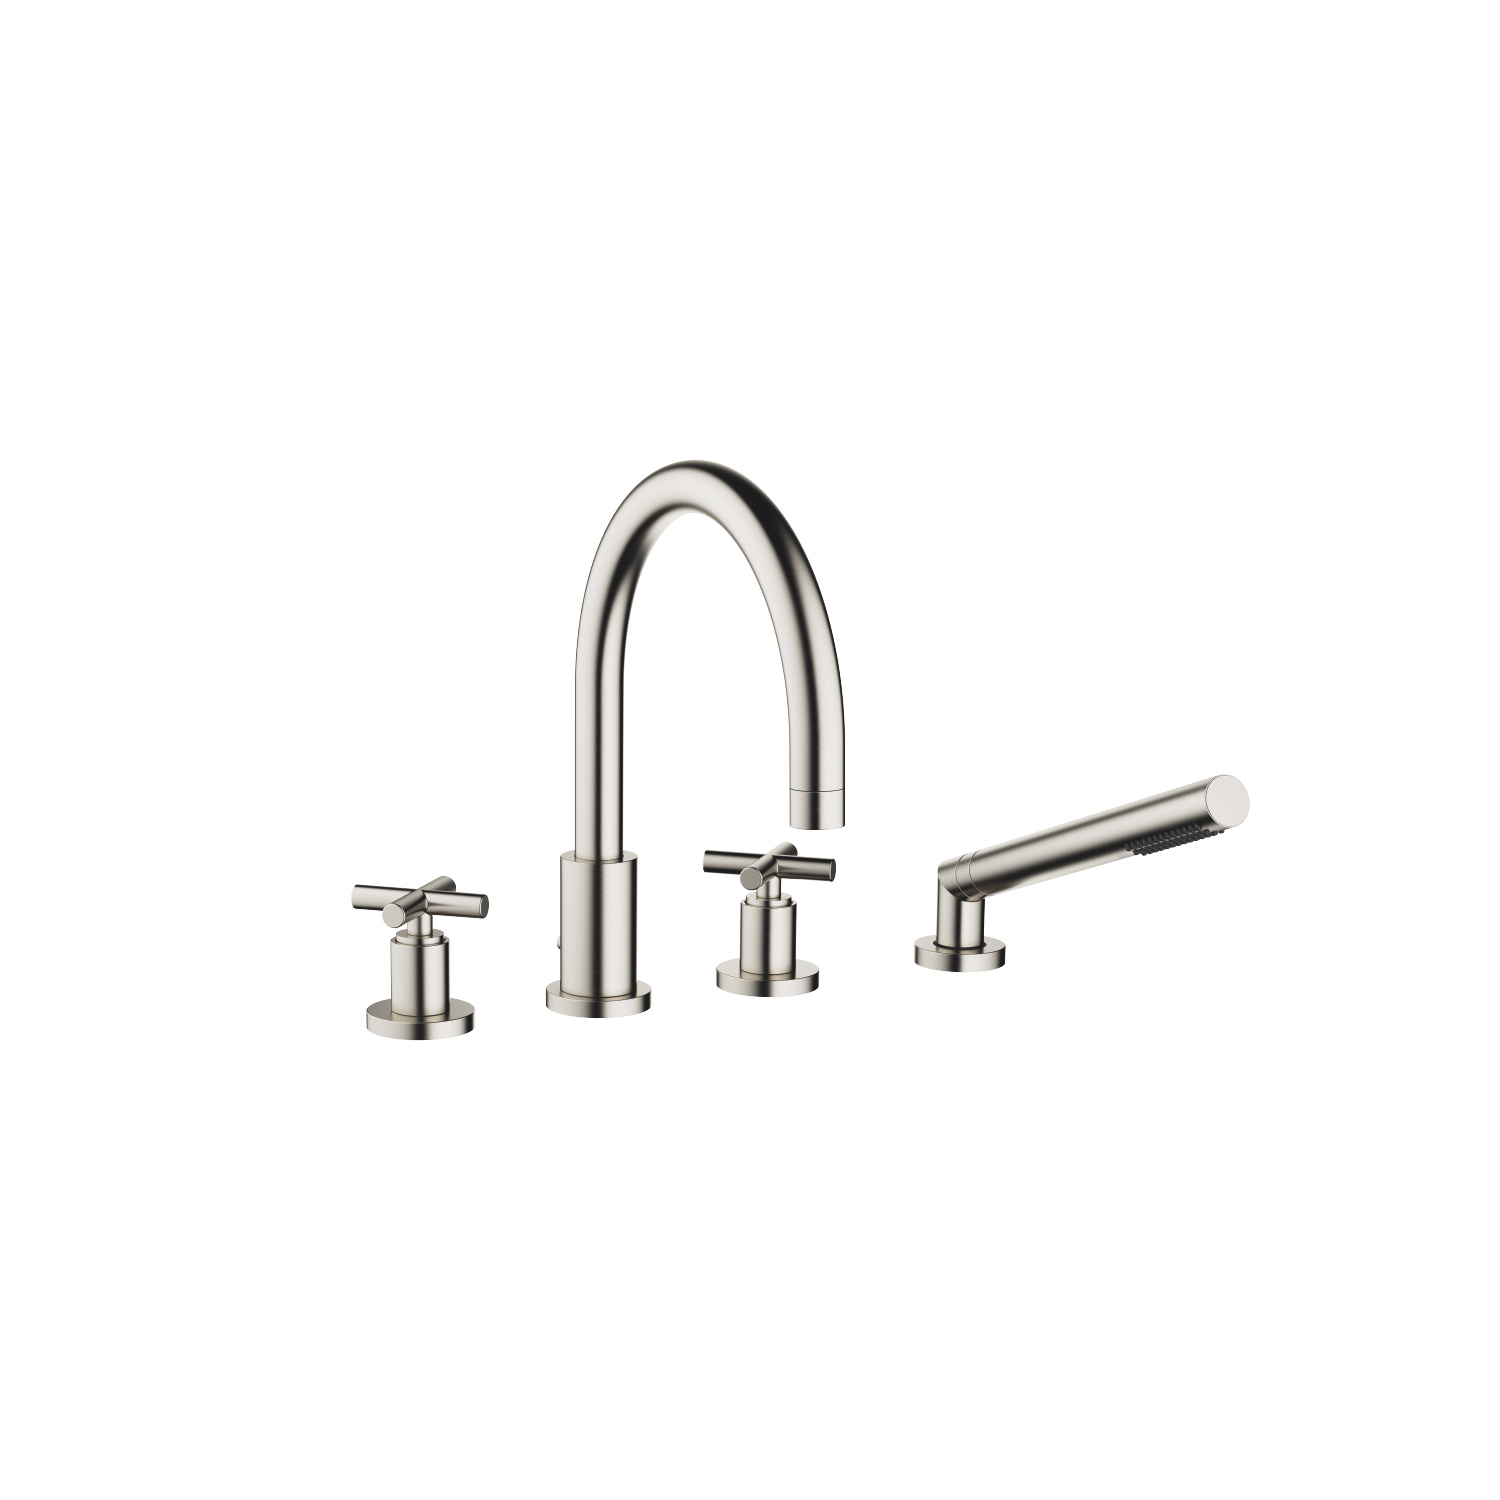 Bath shower set for bath rim or tile edge installation - platinum matt - 27 512 892-06